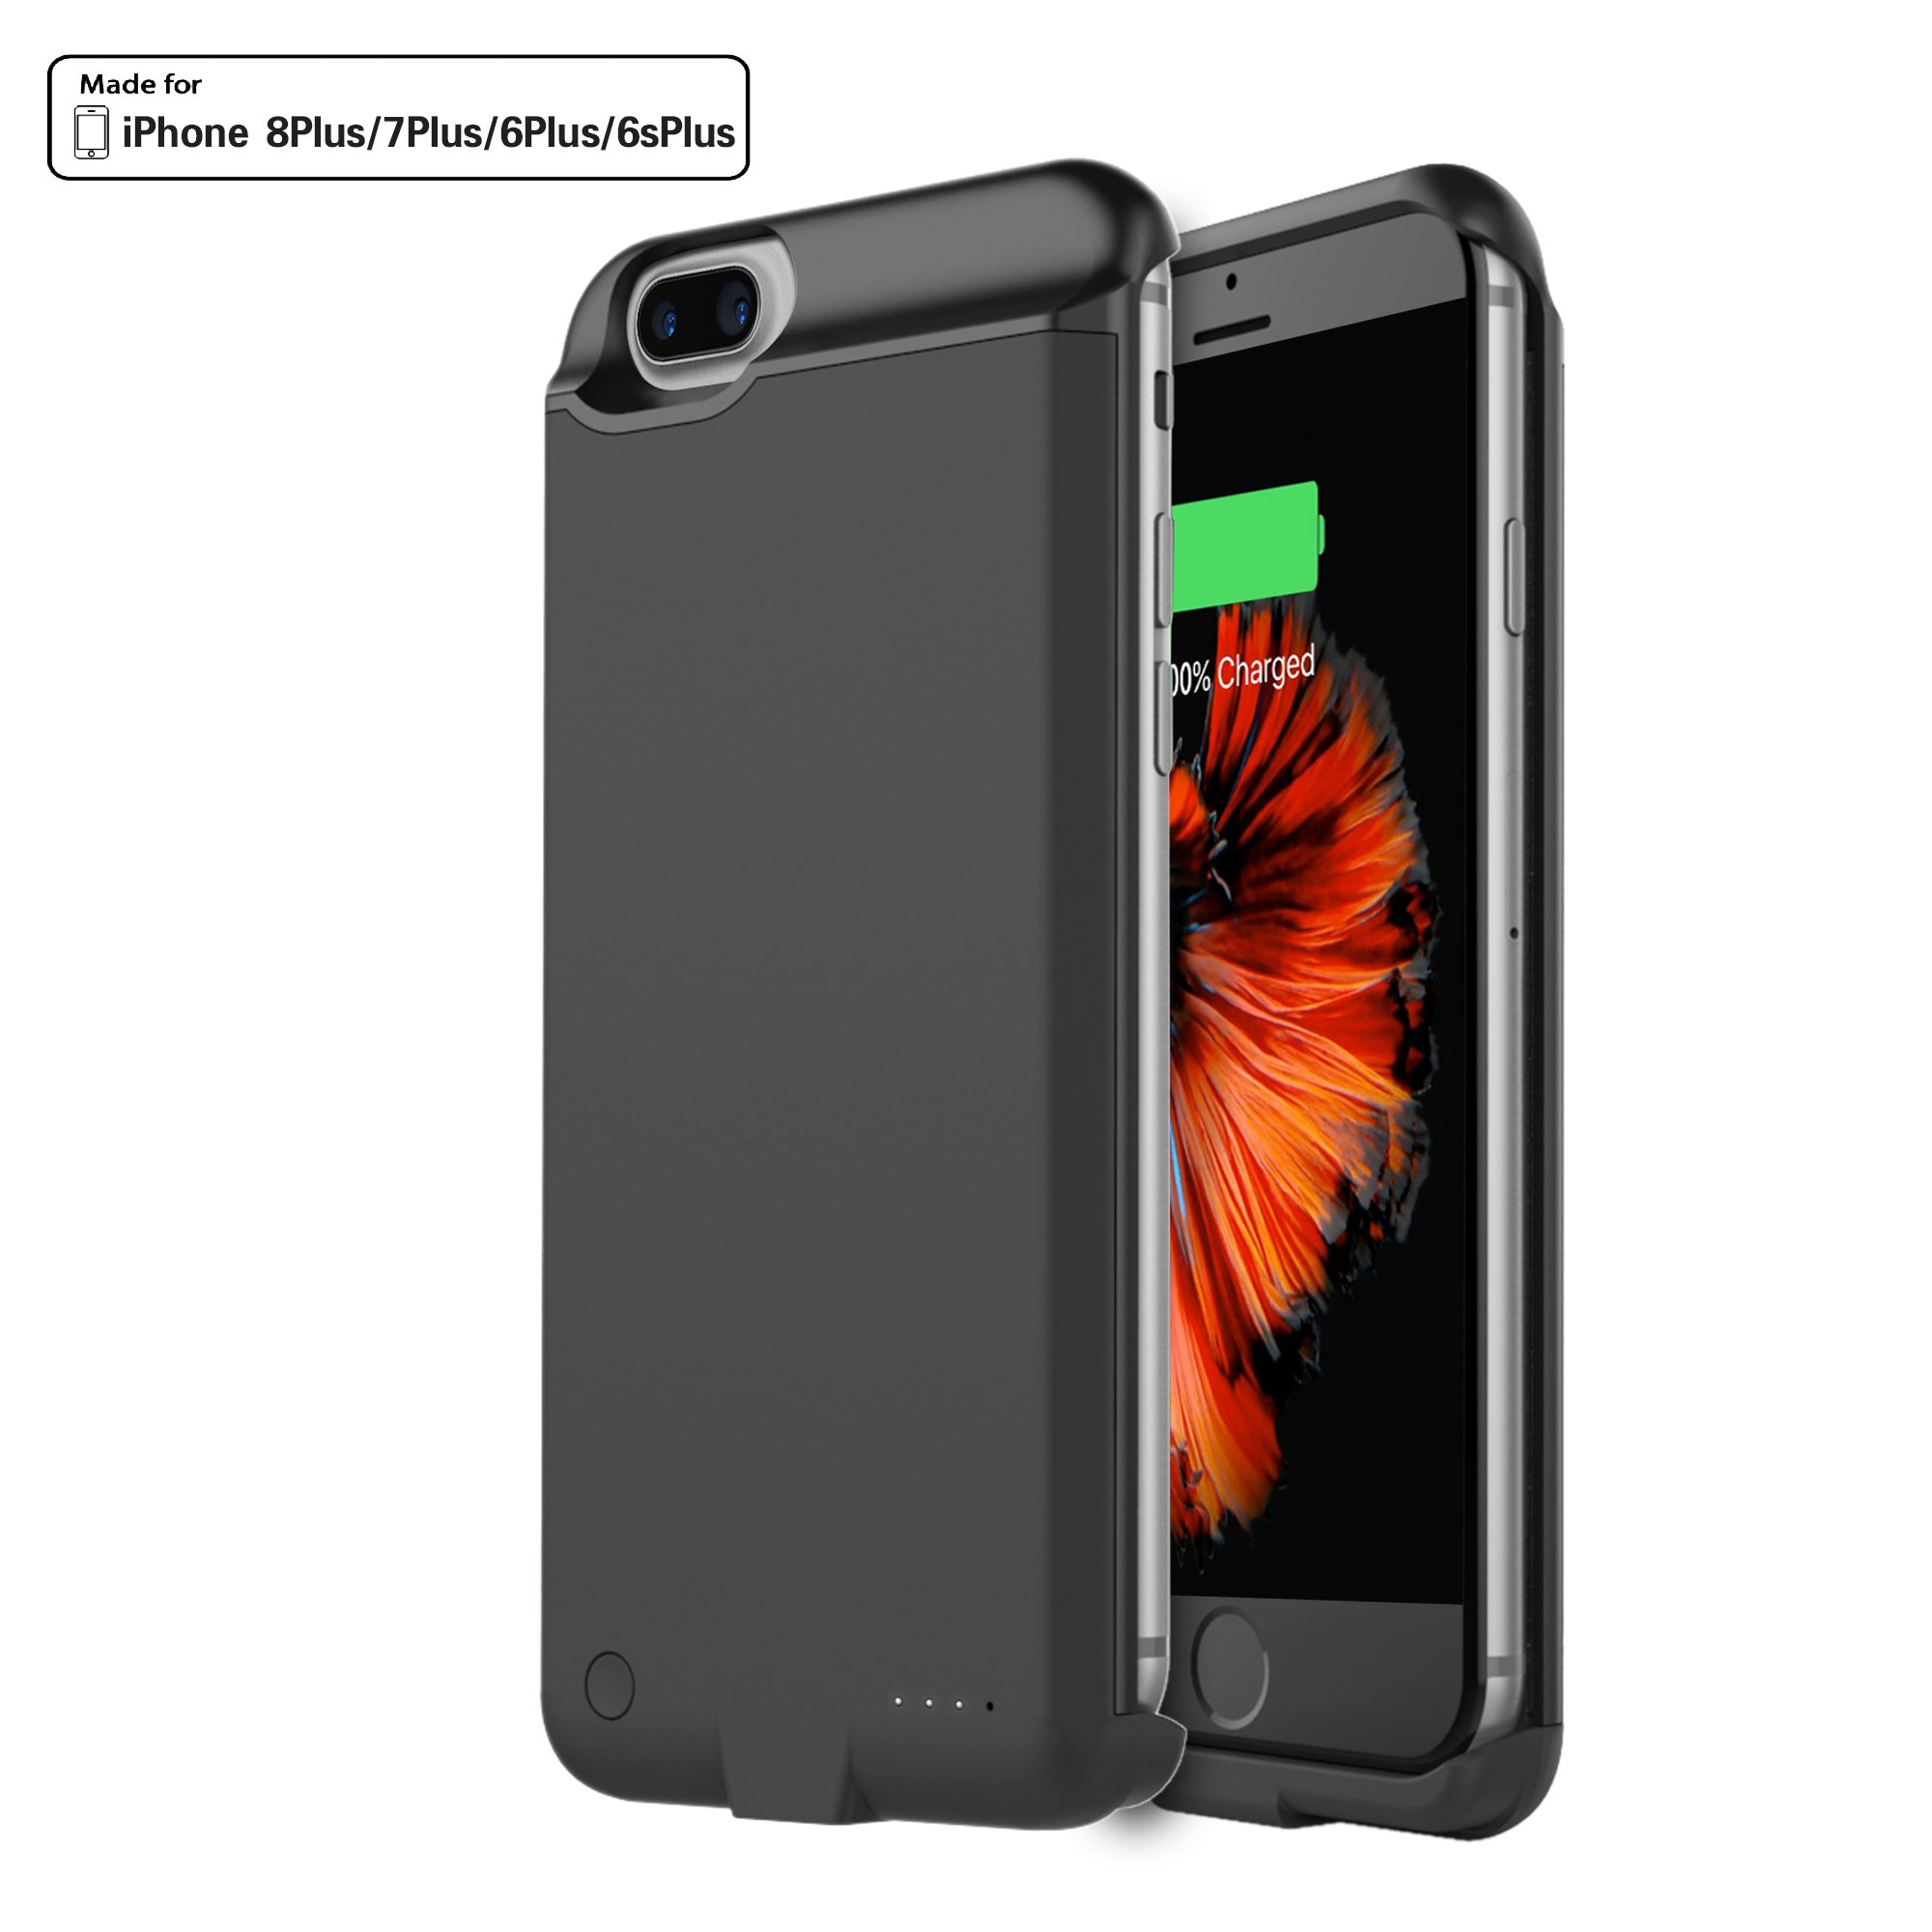 iPhone 7 Plus Battery Case, Techkey Charging Case 5000mAh Battery Pack Power Bank Charger Case Backup Battery Cover for iPhone7 Plus/iPhone 6S Plus/iPhone 6 Plus(Black)